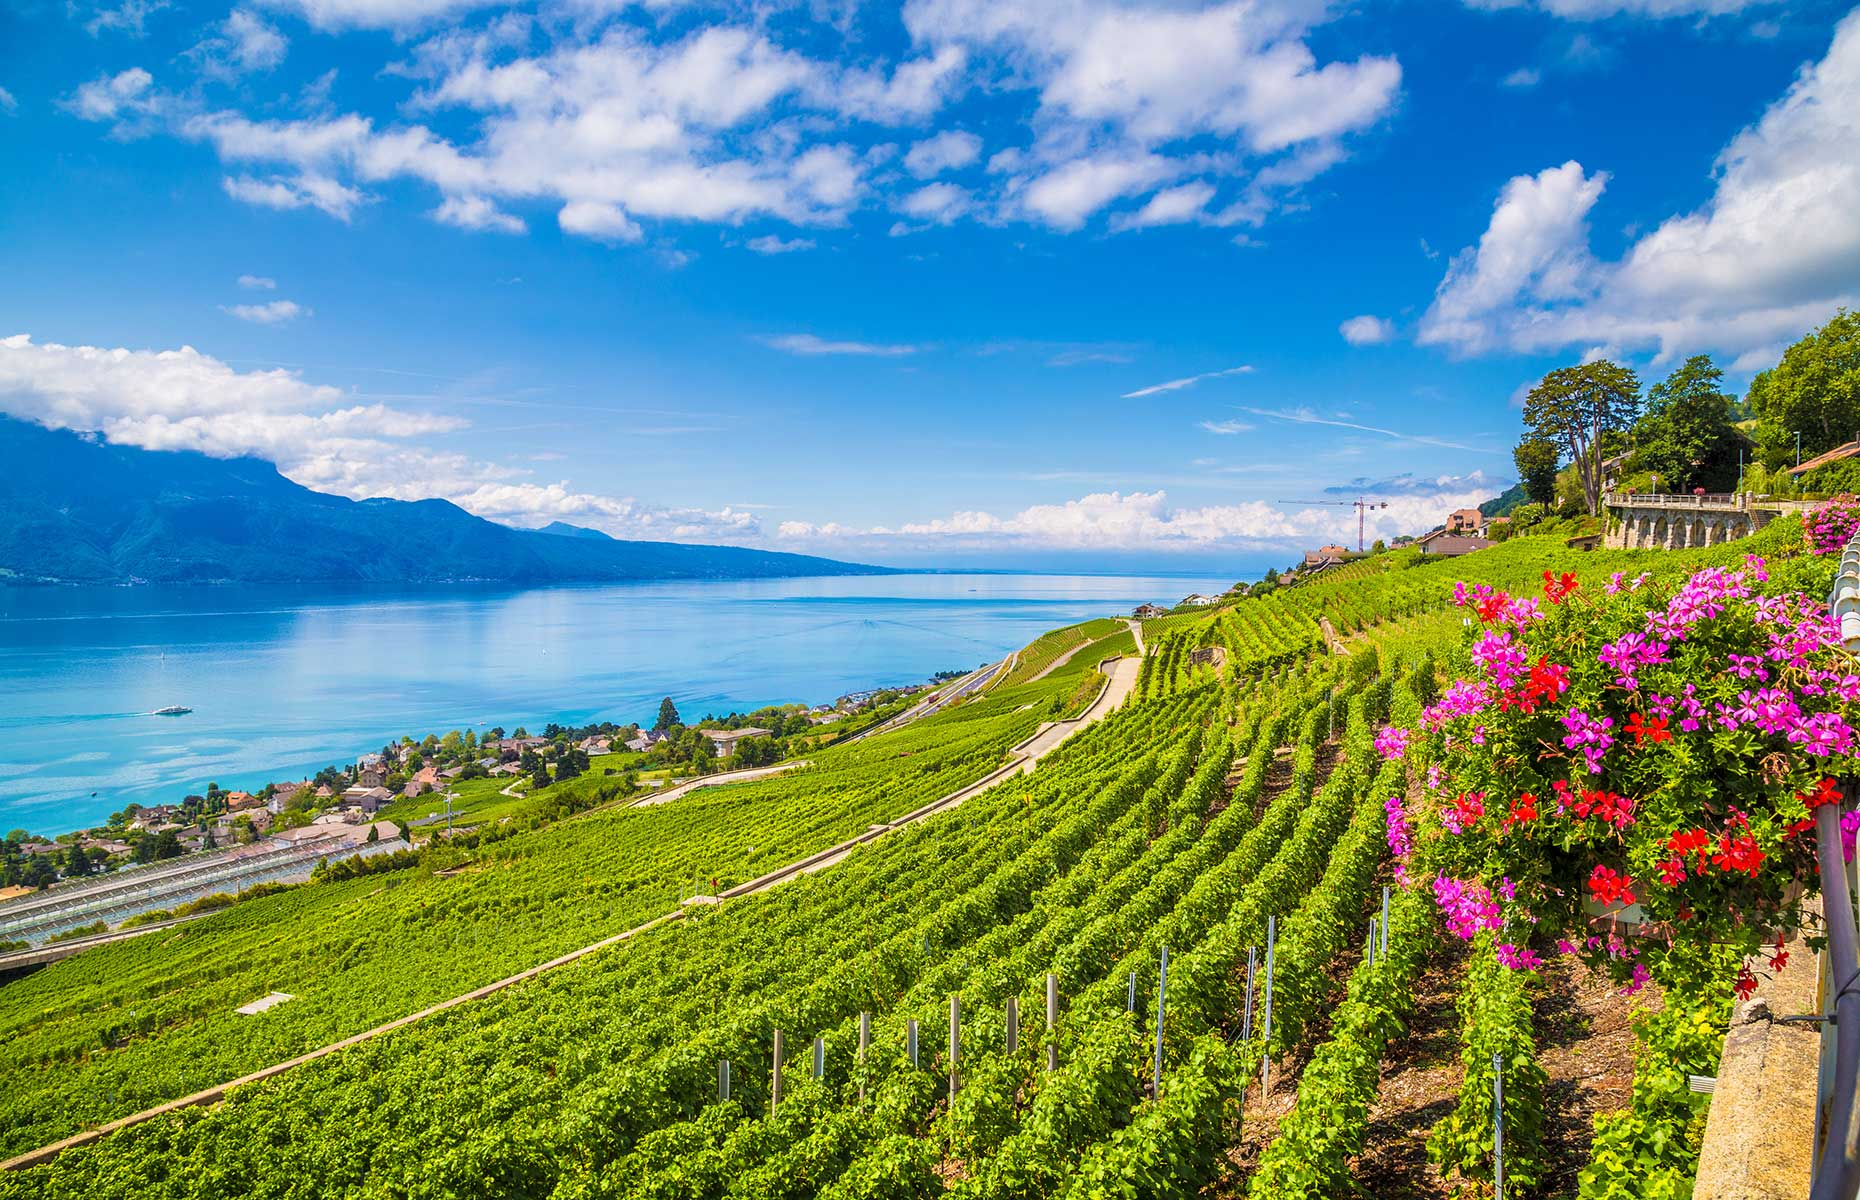 La Vaux region, just above Lausanne, is where you'll find the best wines